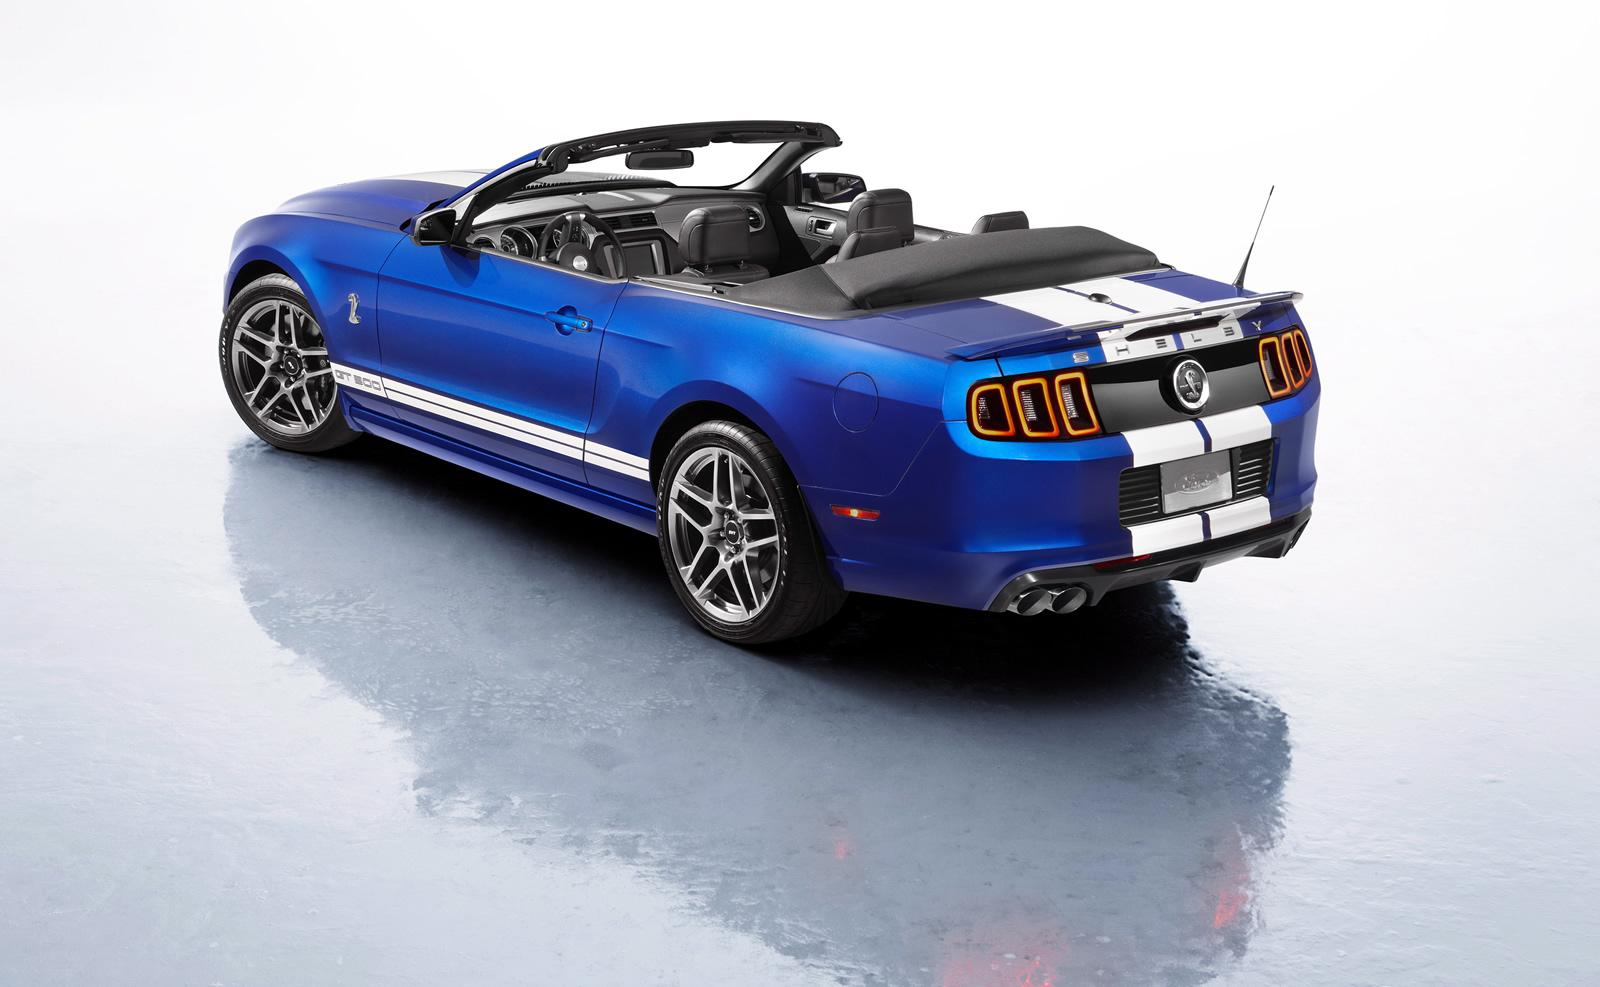 introducing the new ford shelby gt500 convertible 2012 2013 garage car. Black Bedroom Furniture Sets. Home Design Ideas